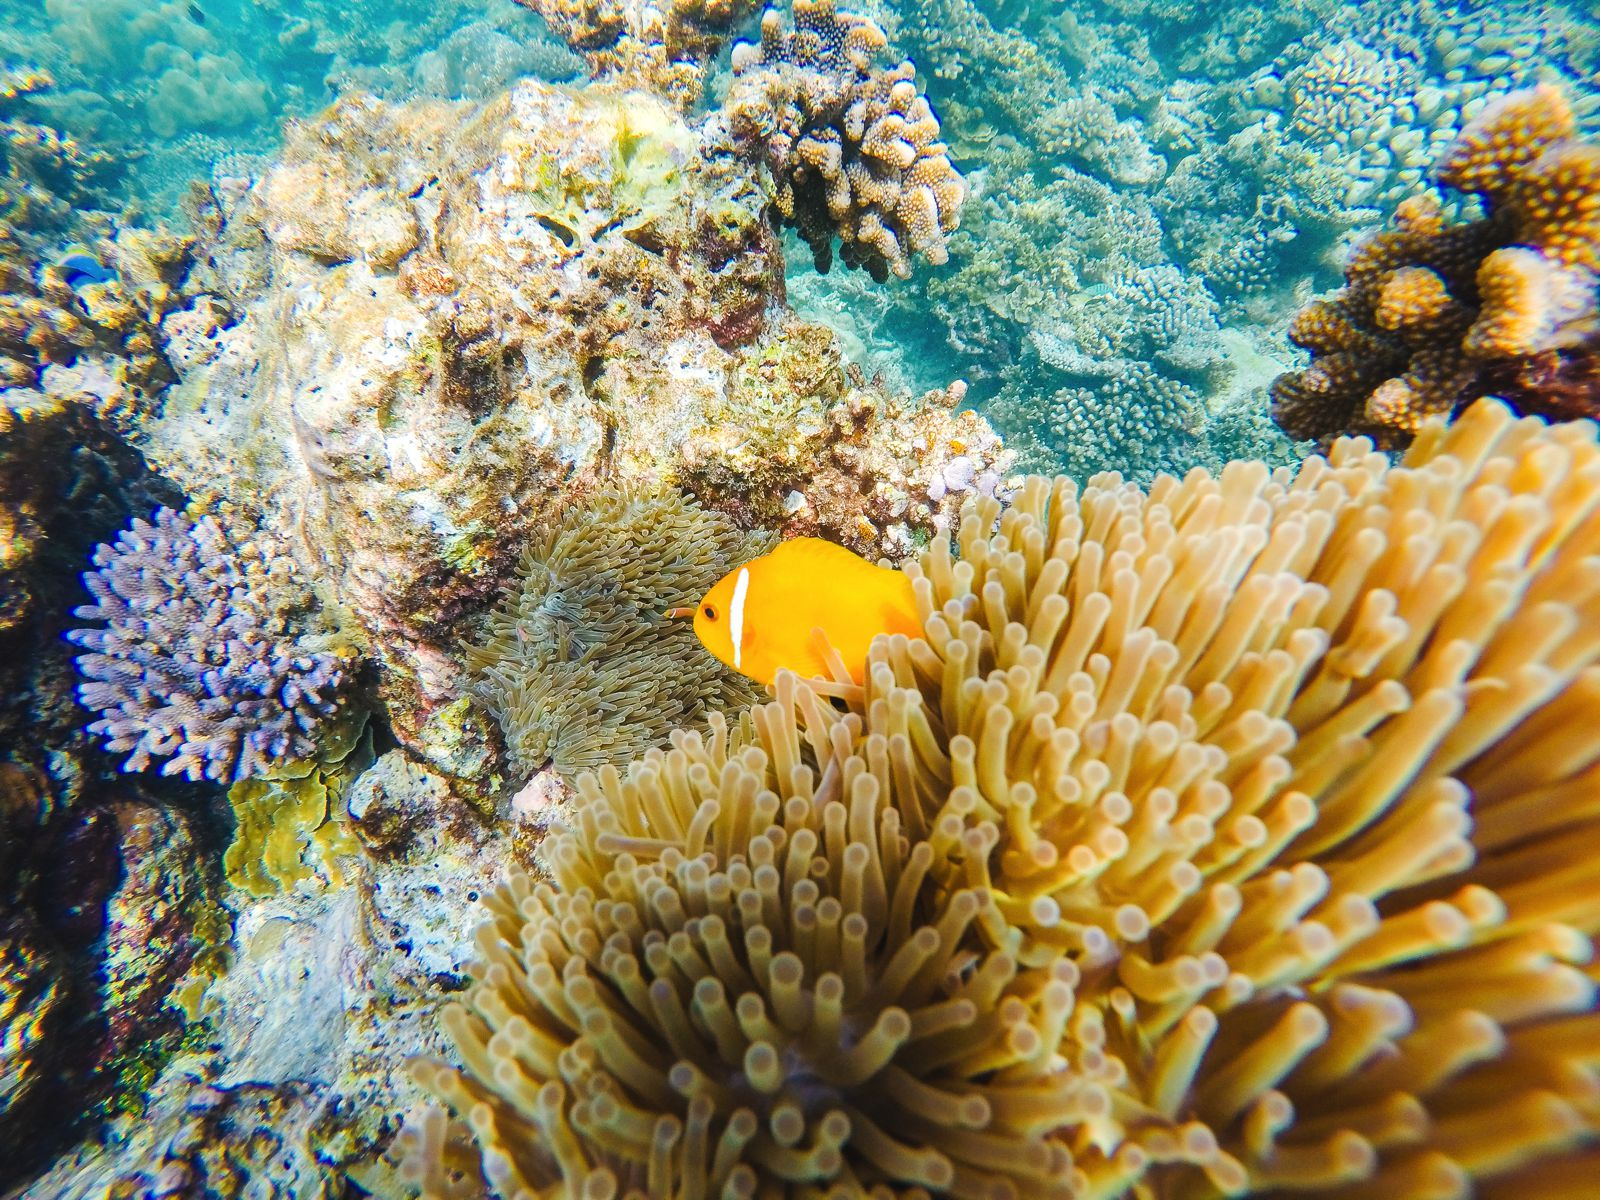 Swimming With Sharks, Turtles, Clownfish And Stingrays In The Maldives (22)